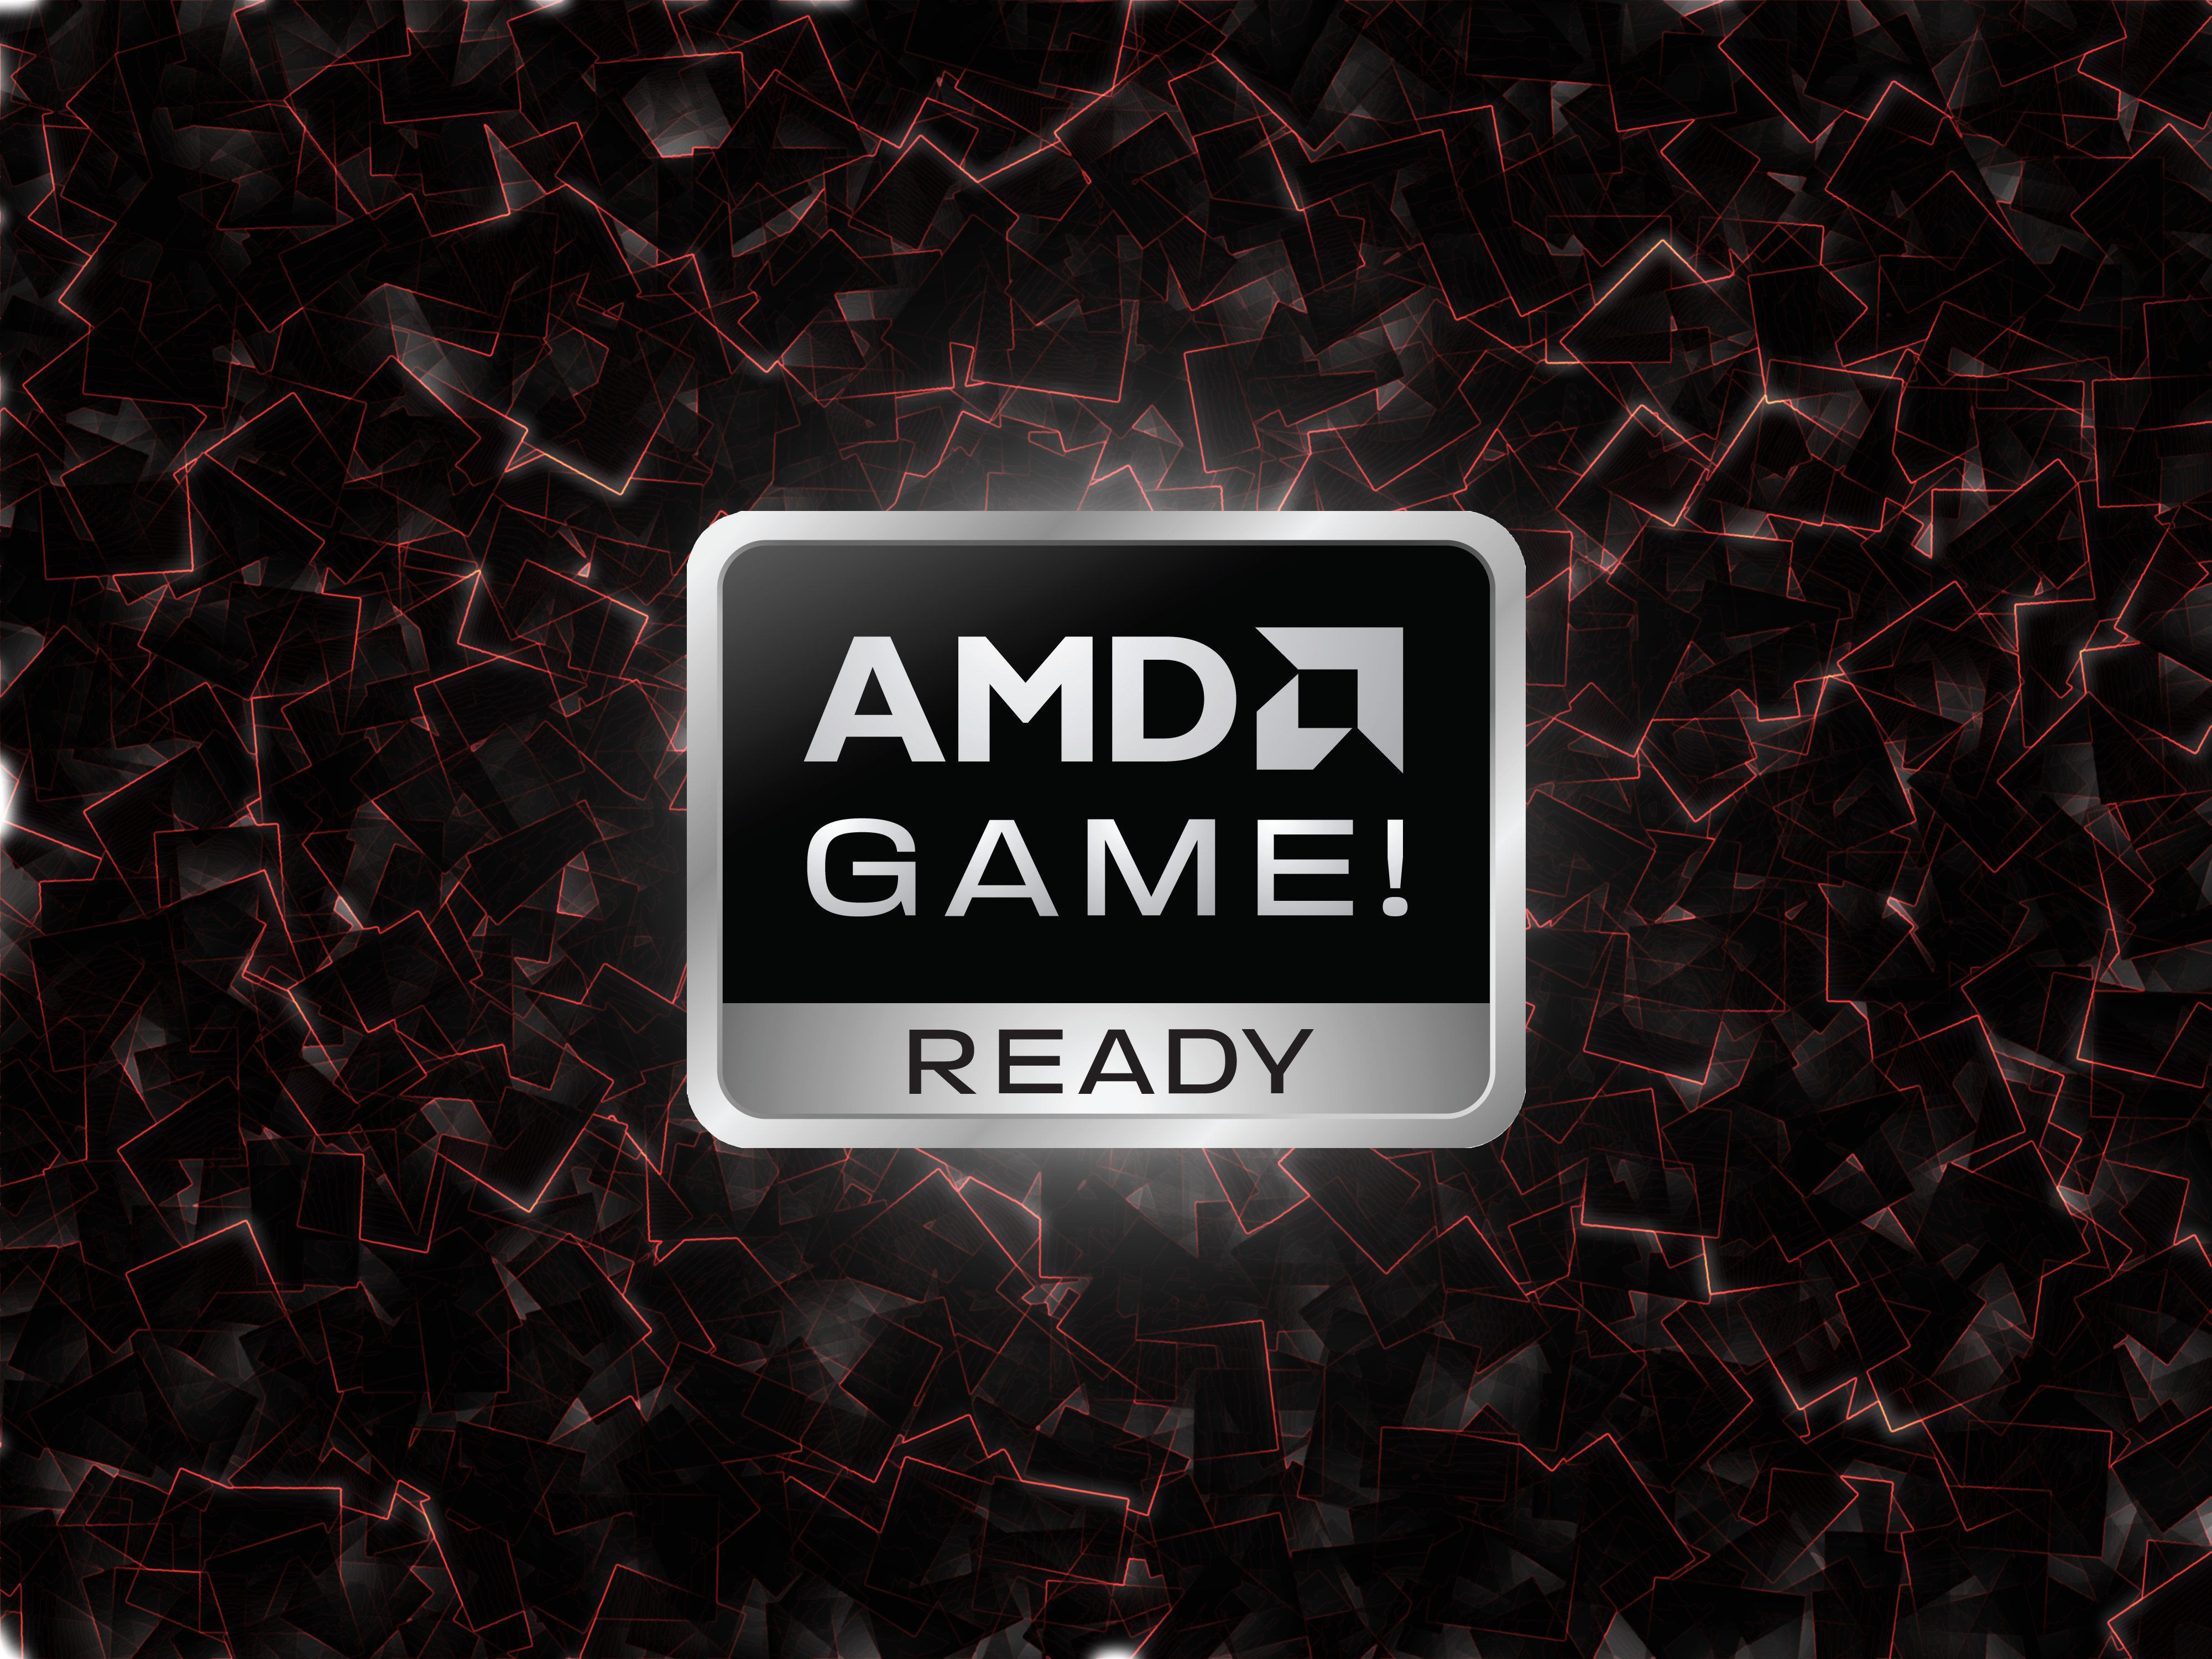 Amd Wallpaper